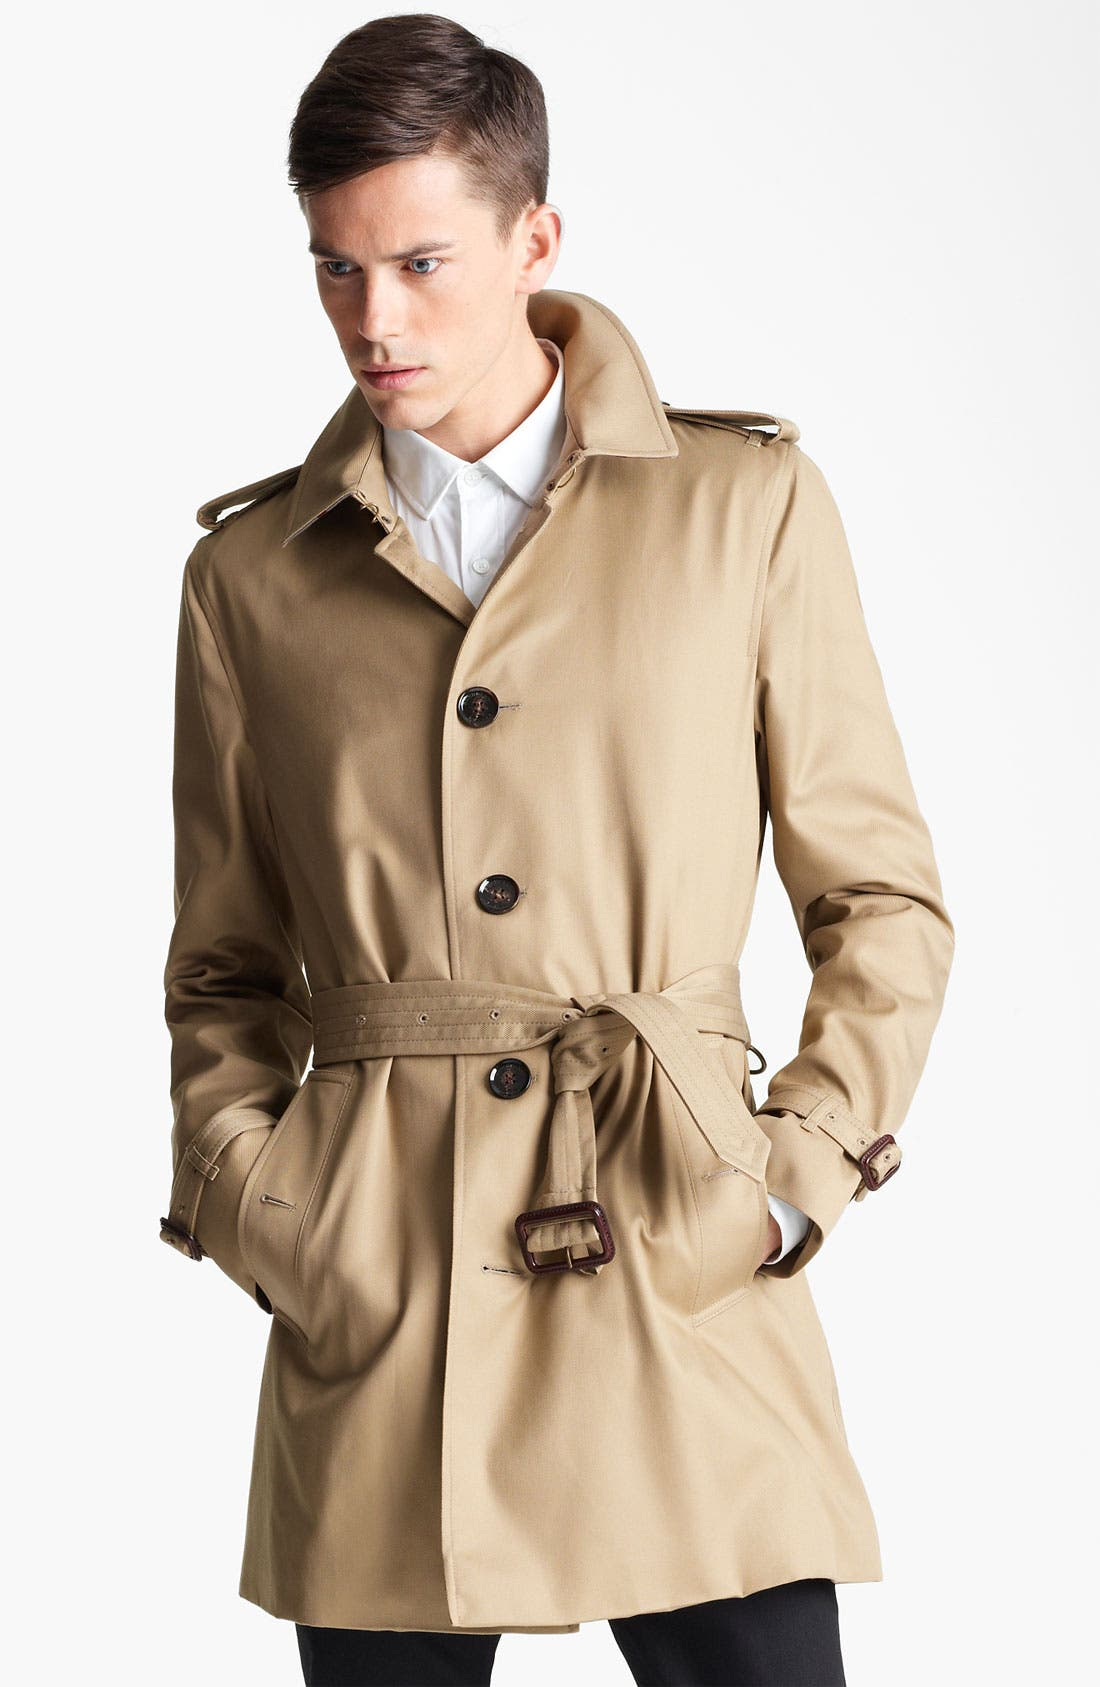 London 'Britton' Single Breasted Trench Coat,                             Main thumbnail 1, color,                             250